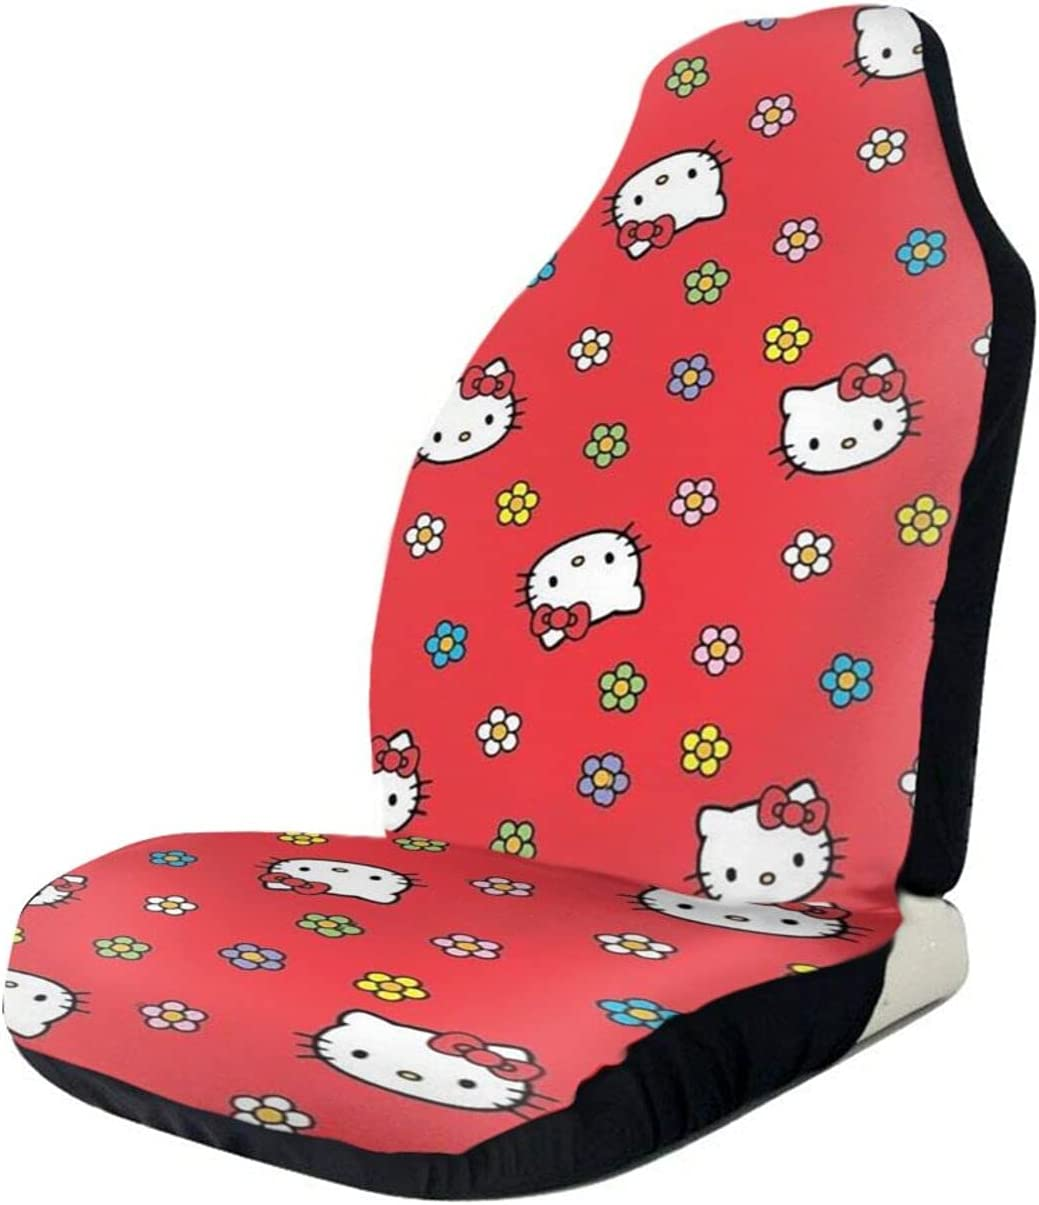 Yandong Hello Happy Kitty Car Accessories Covers Washable Portland Mall Seat Sale price S